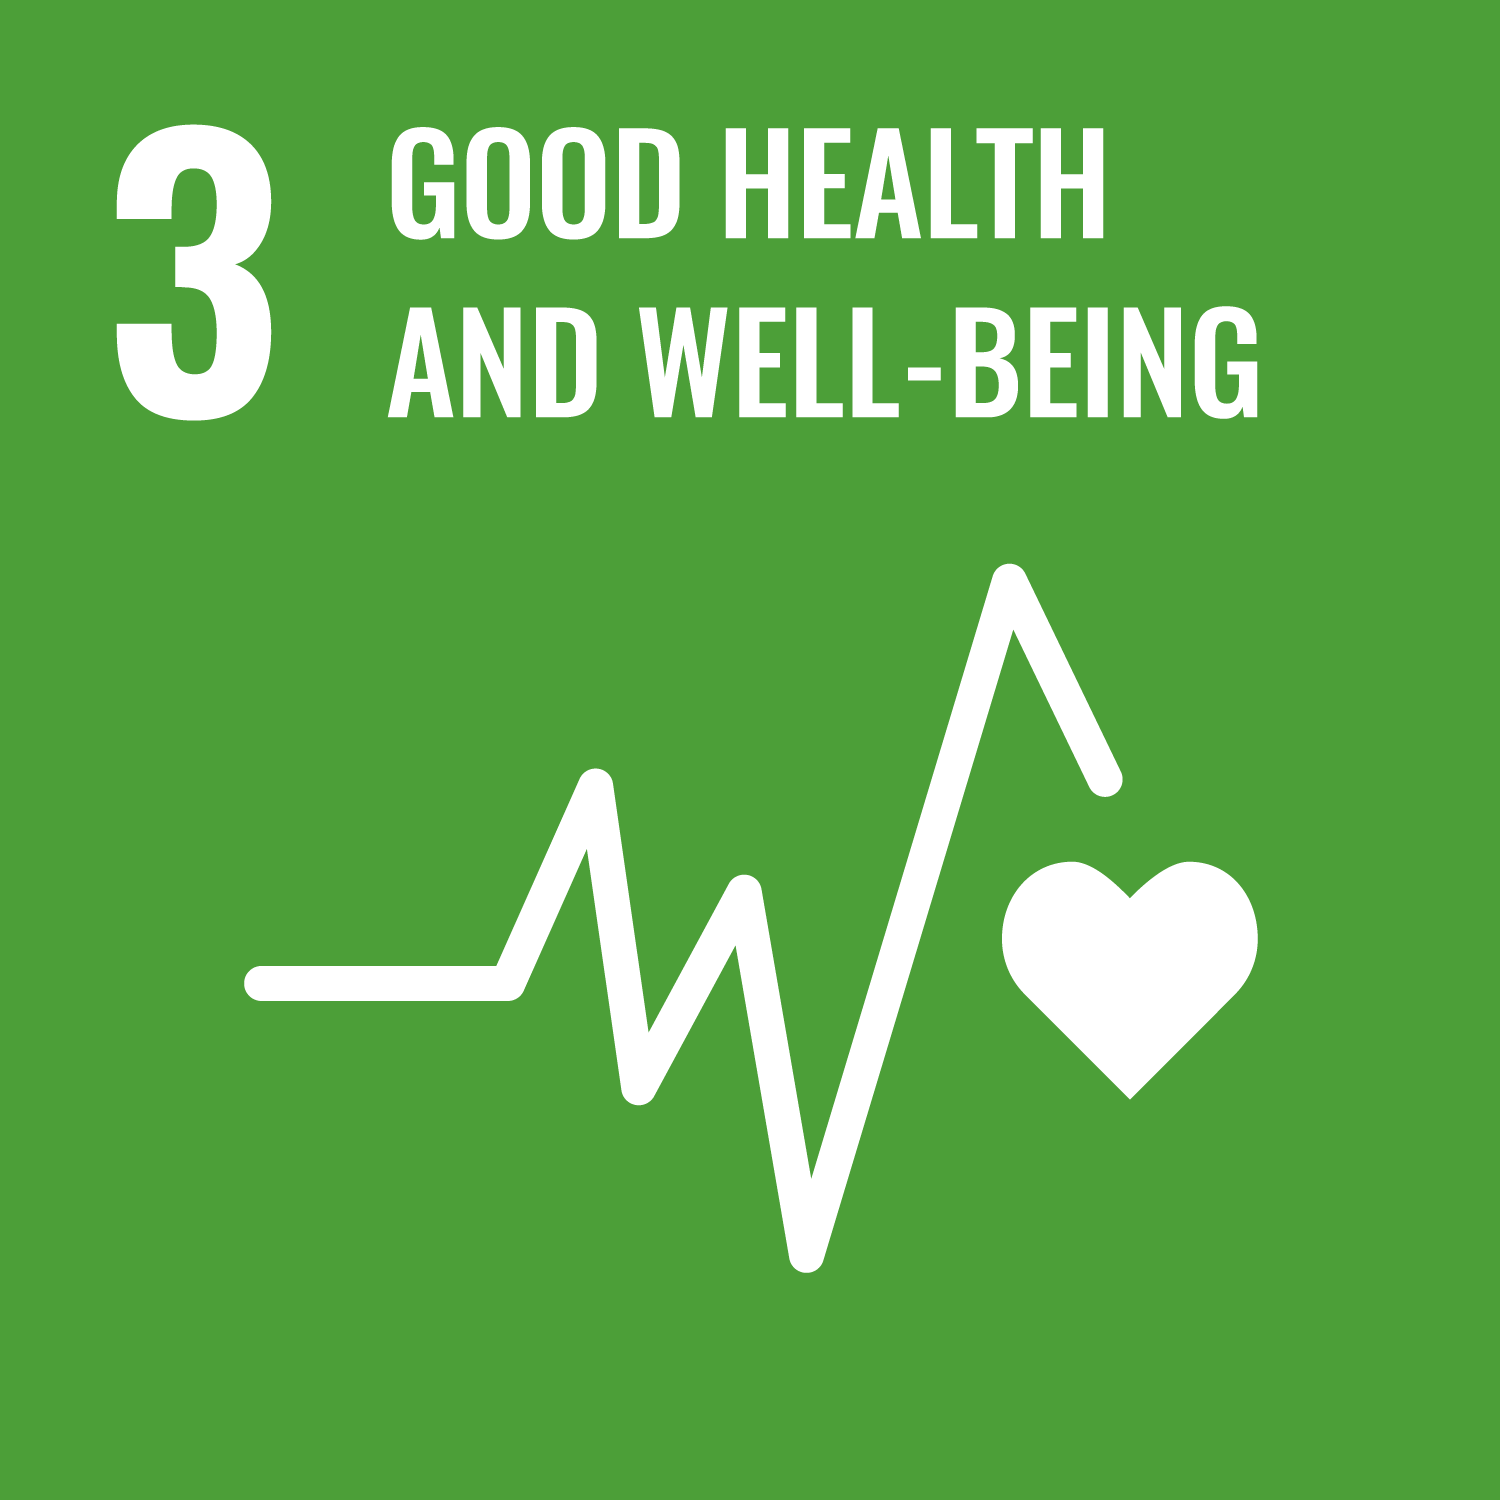 Goal 3 icon - Good health and well-being